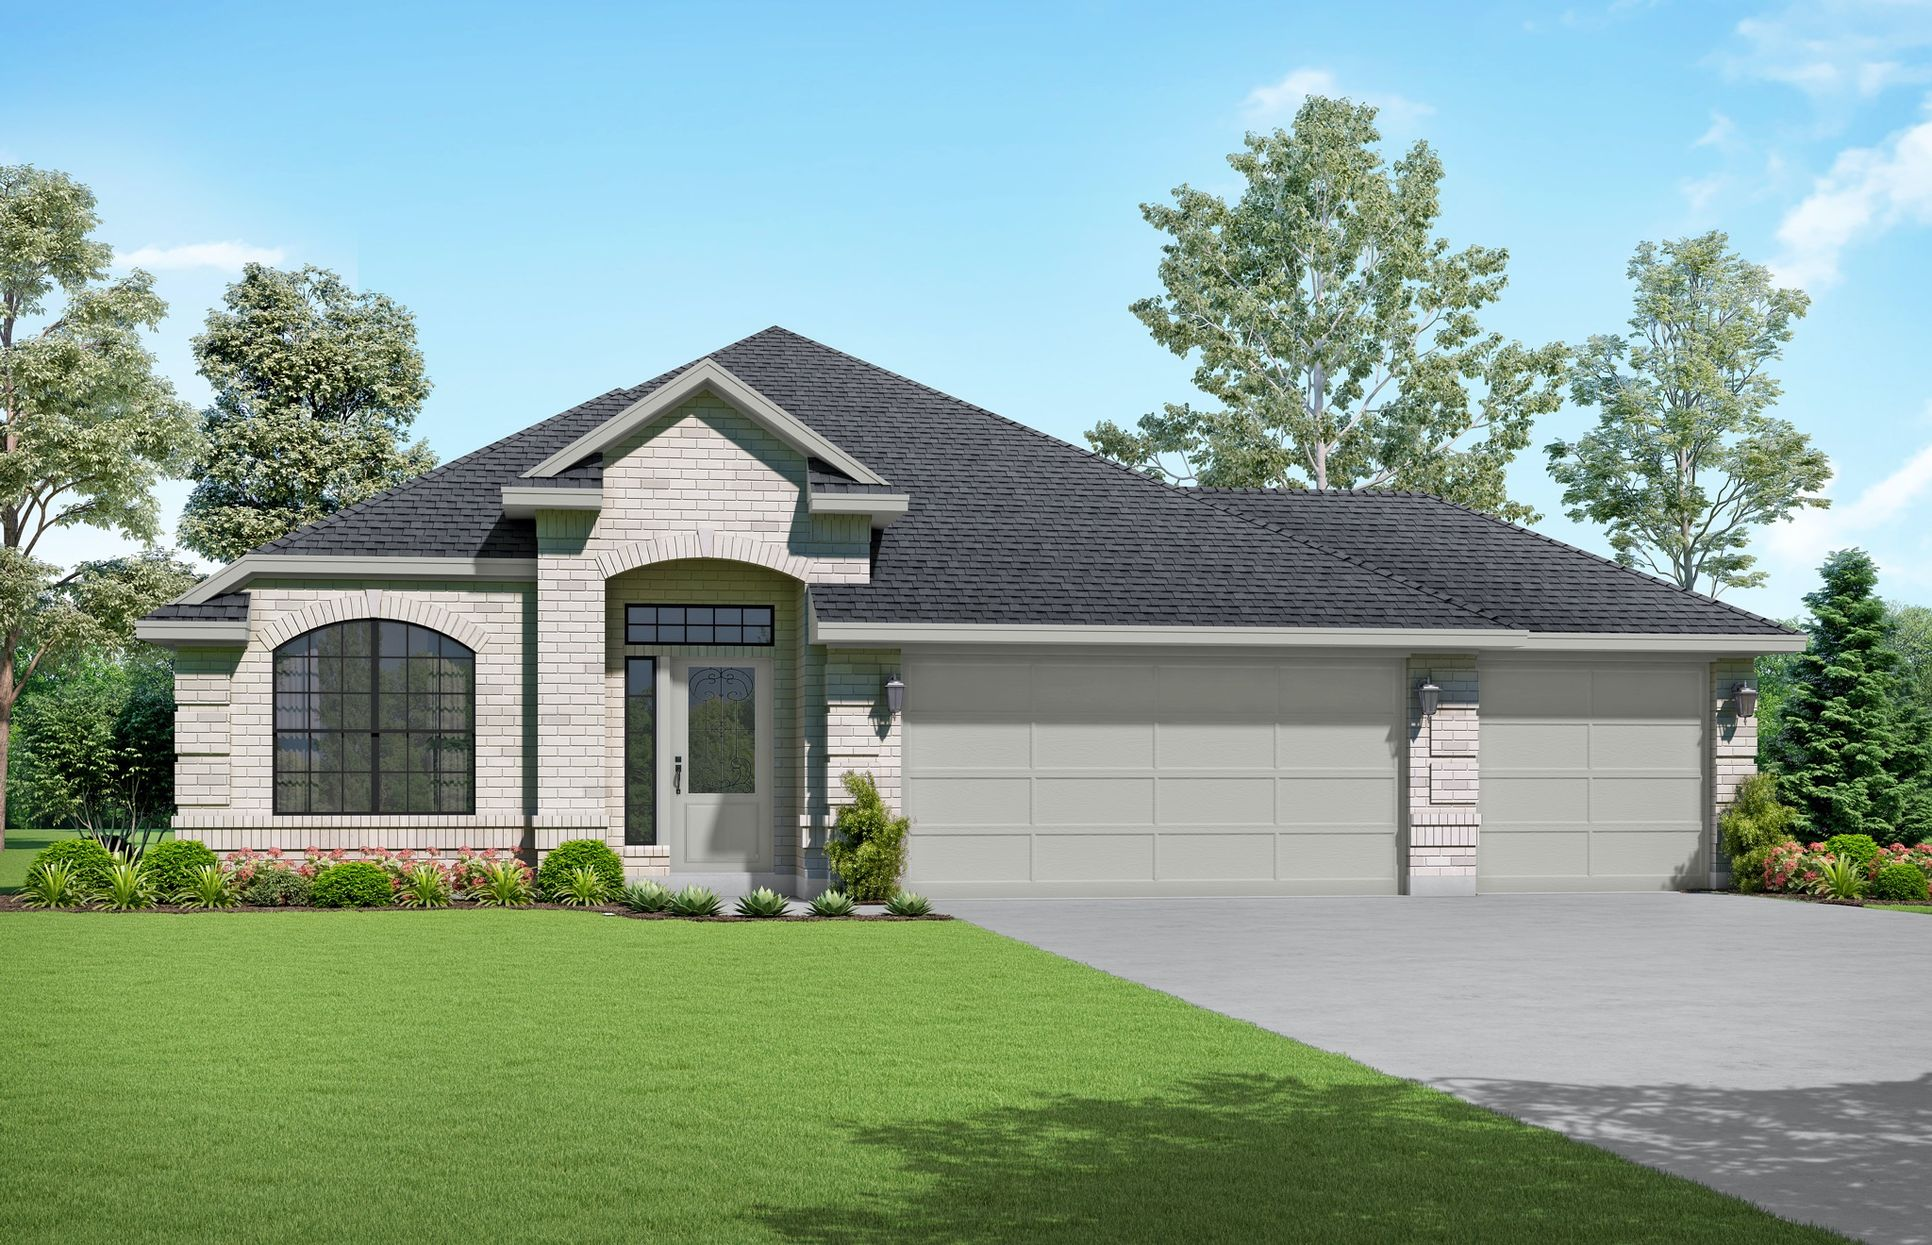 Sonya Elevation A. Images are artist renderings and will differ from the actual home built.:Sonya Elevation A